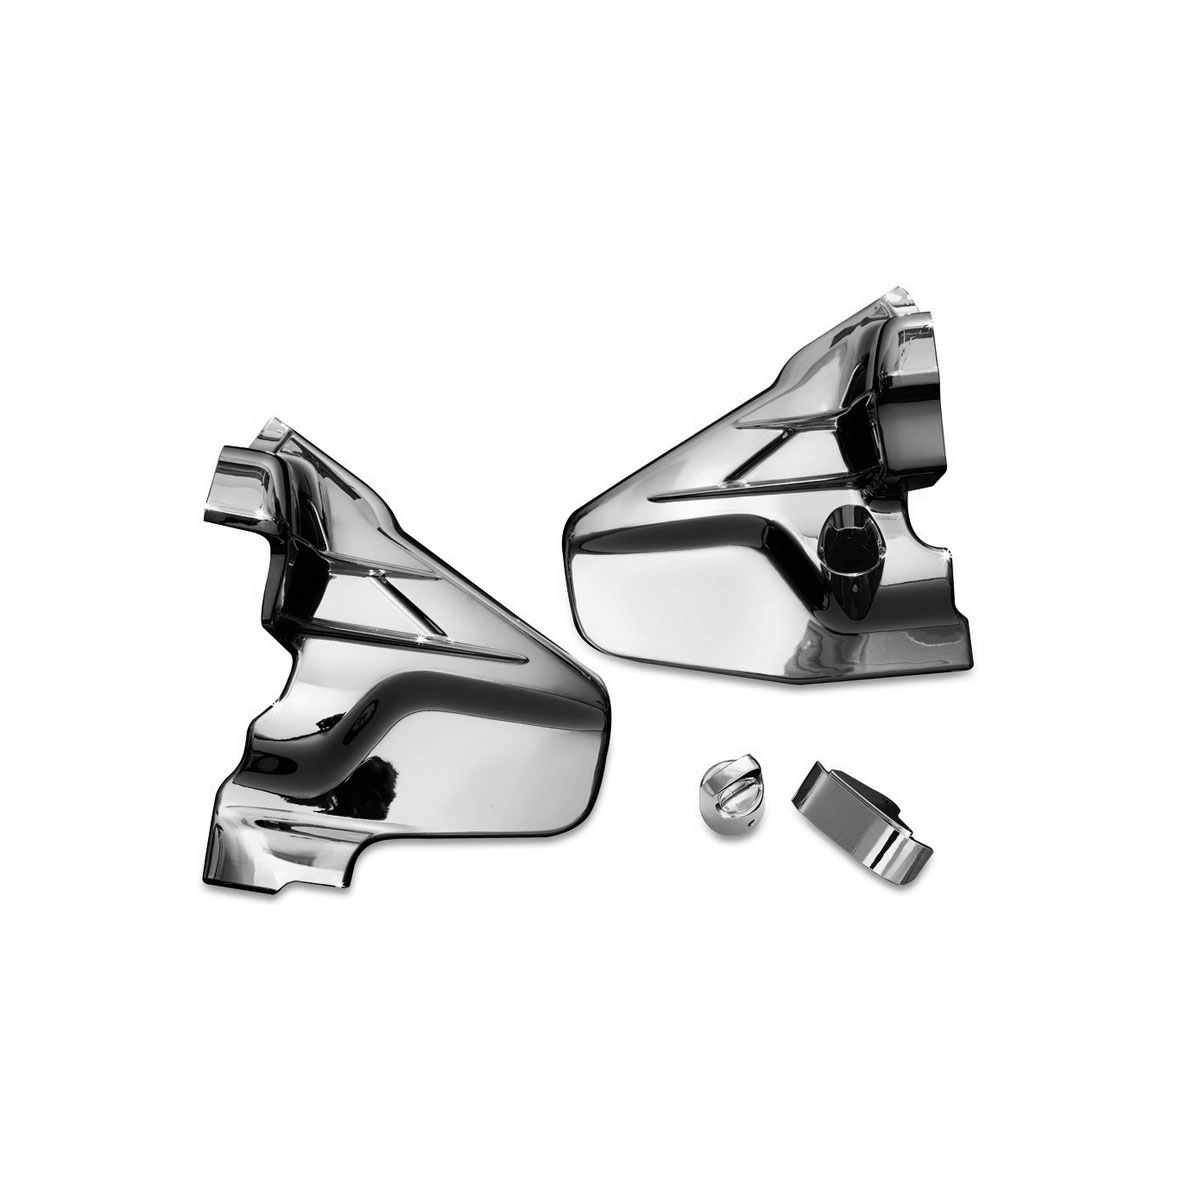 Kuryakyn Louvered Chrome Transmission Covers for GL1800 Gold Wing